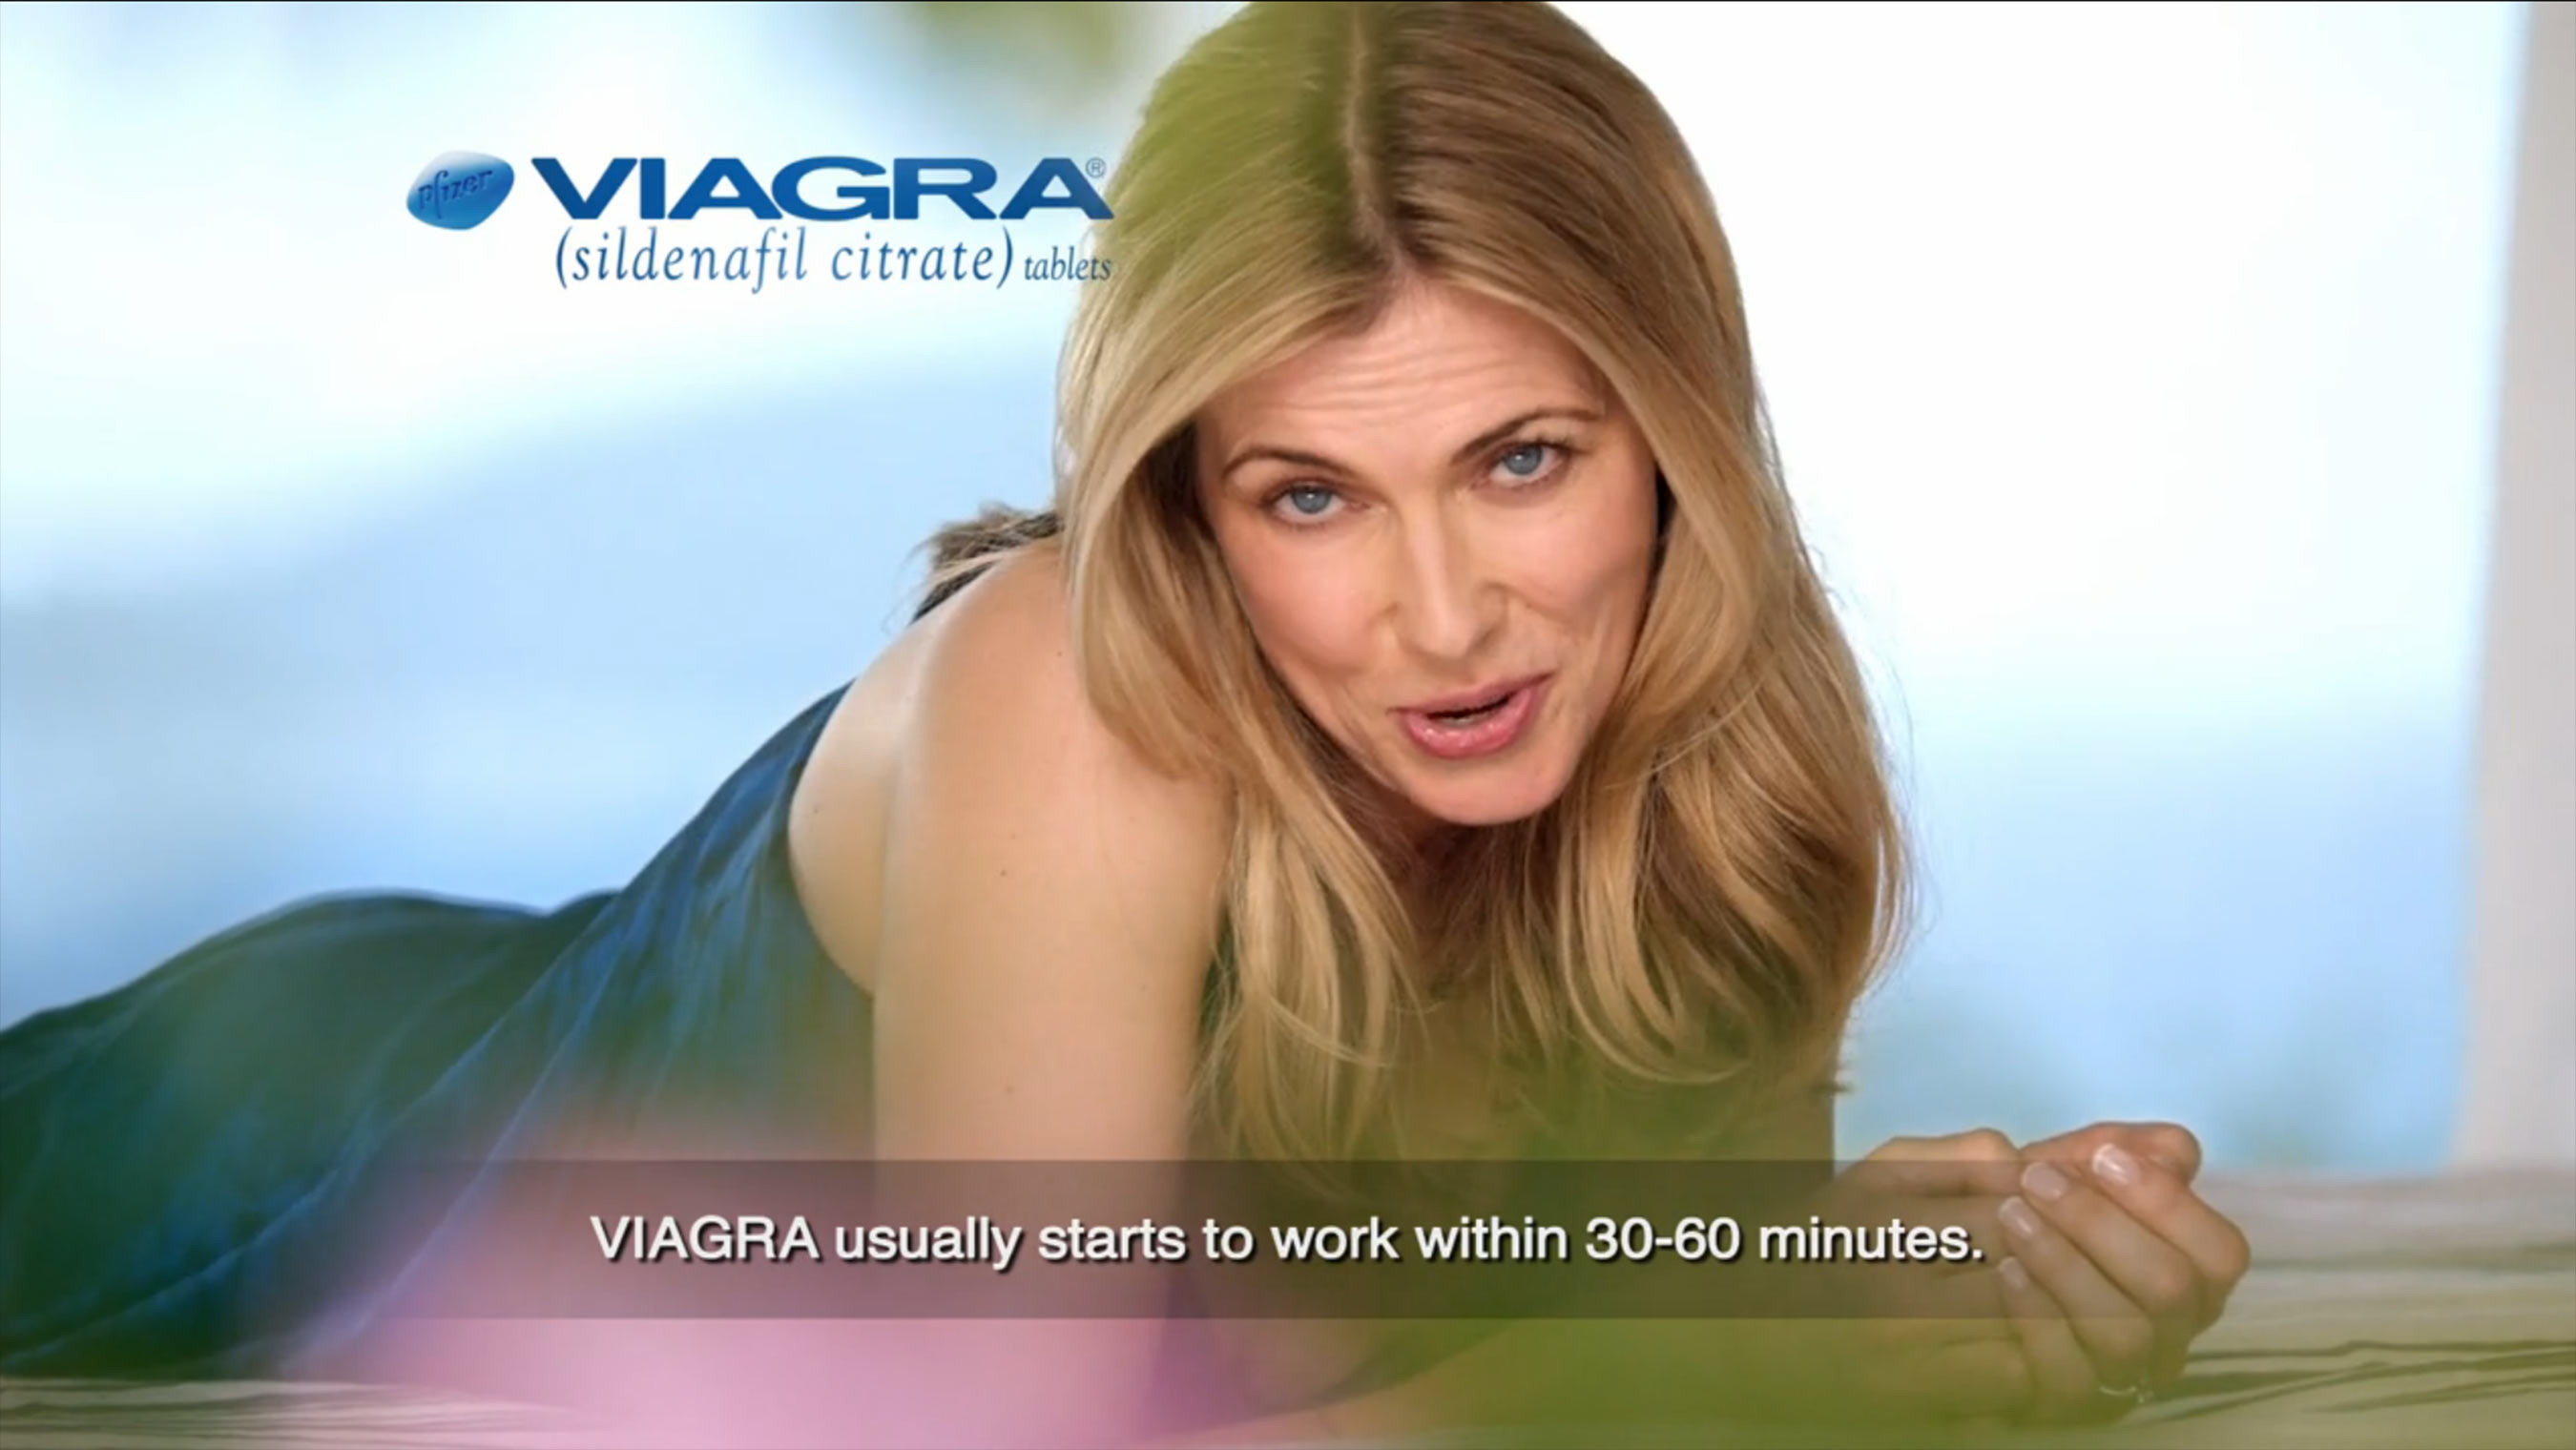 Women in viagra commercials